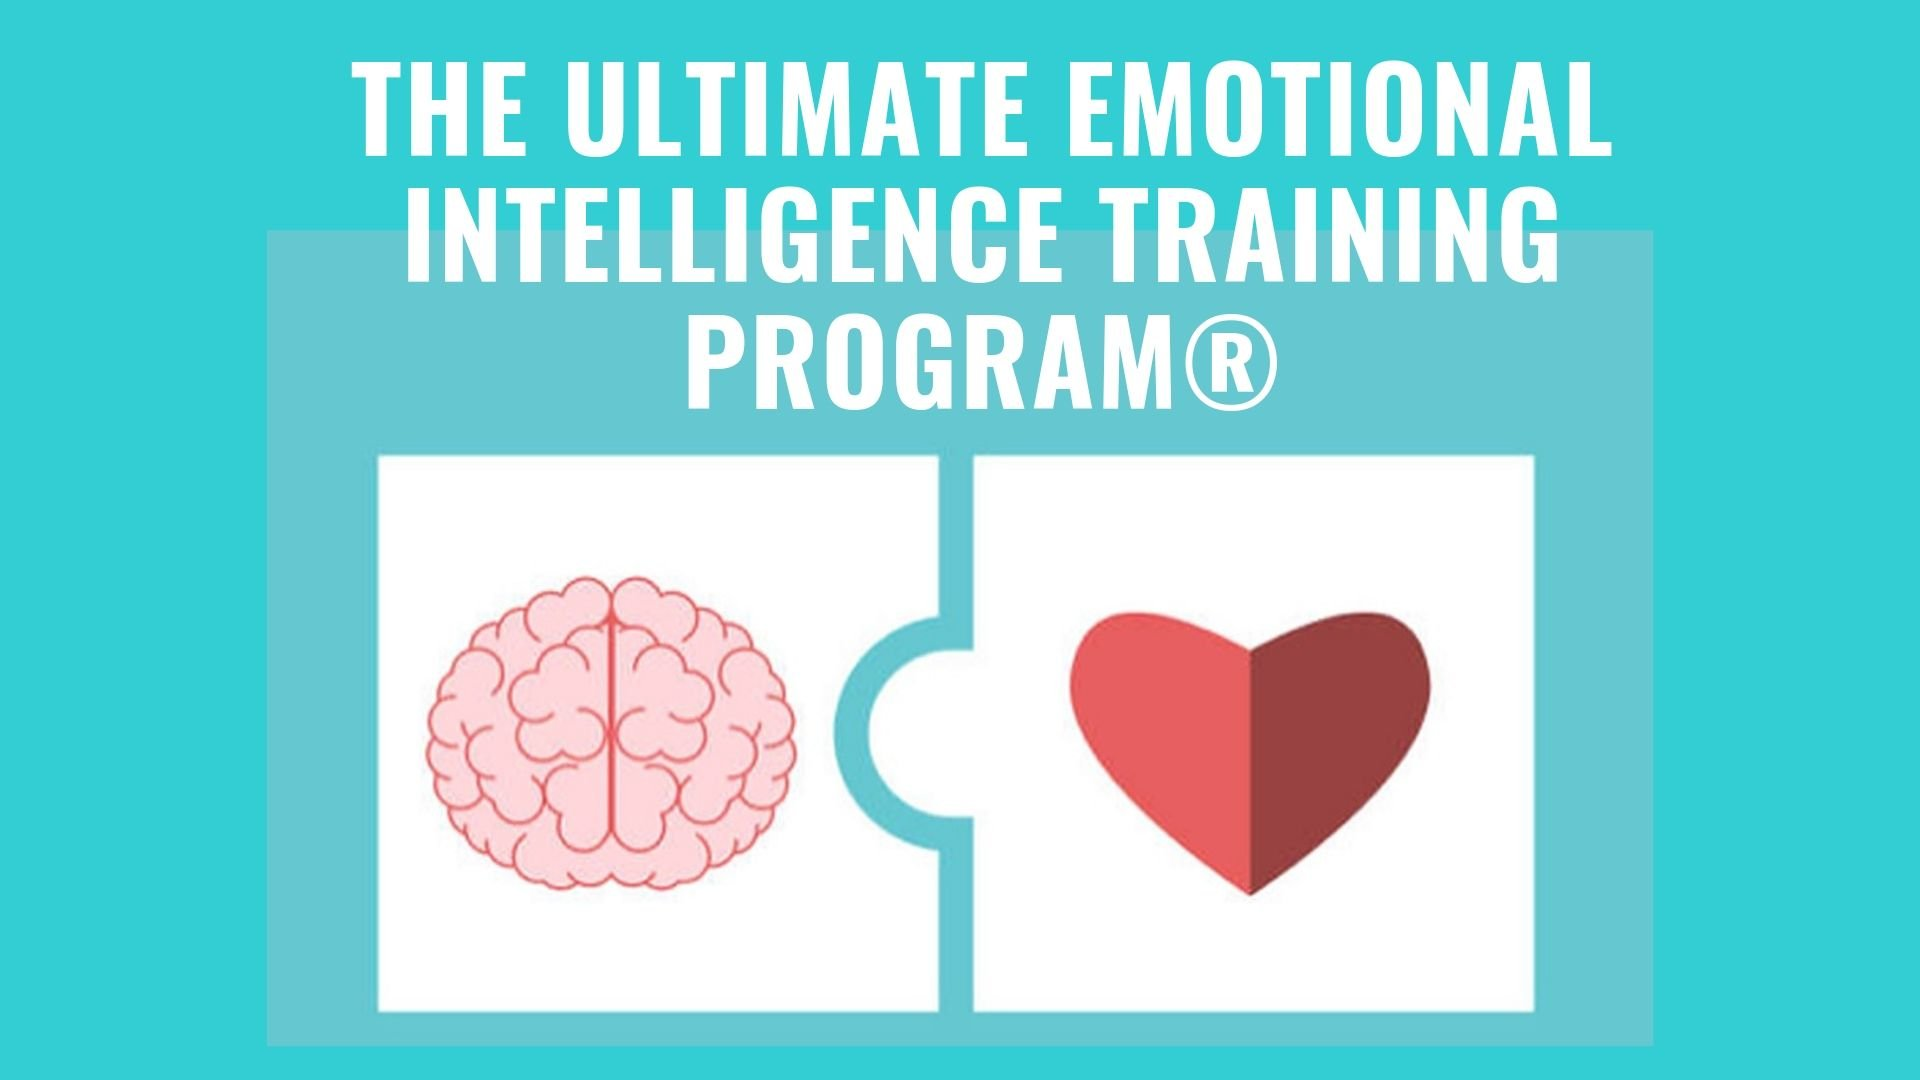 The Ultimate Emotional Intelligence Training Program ®